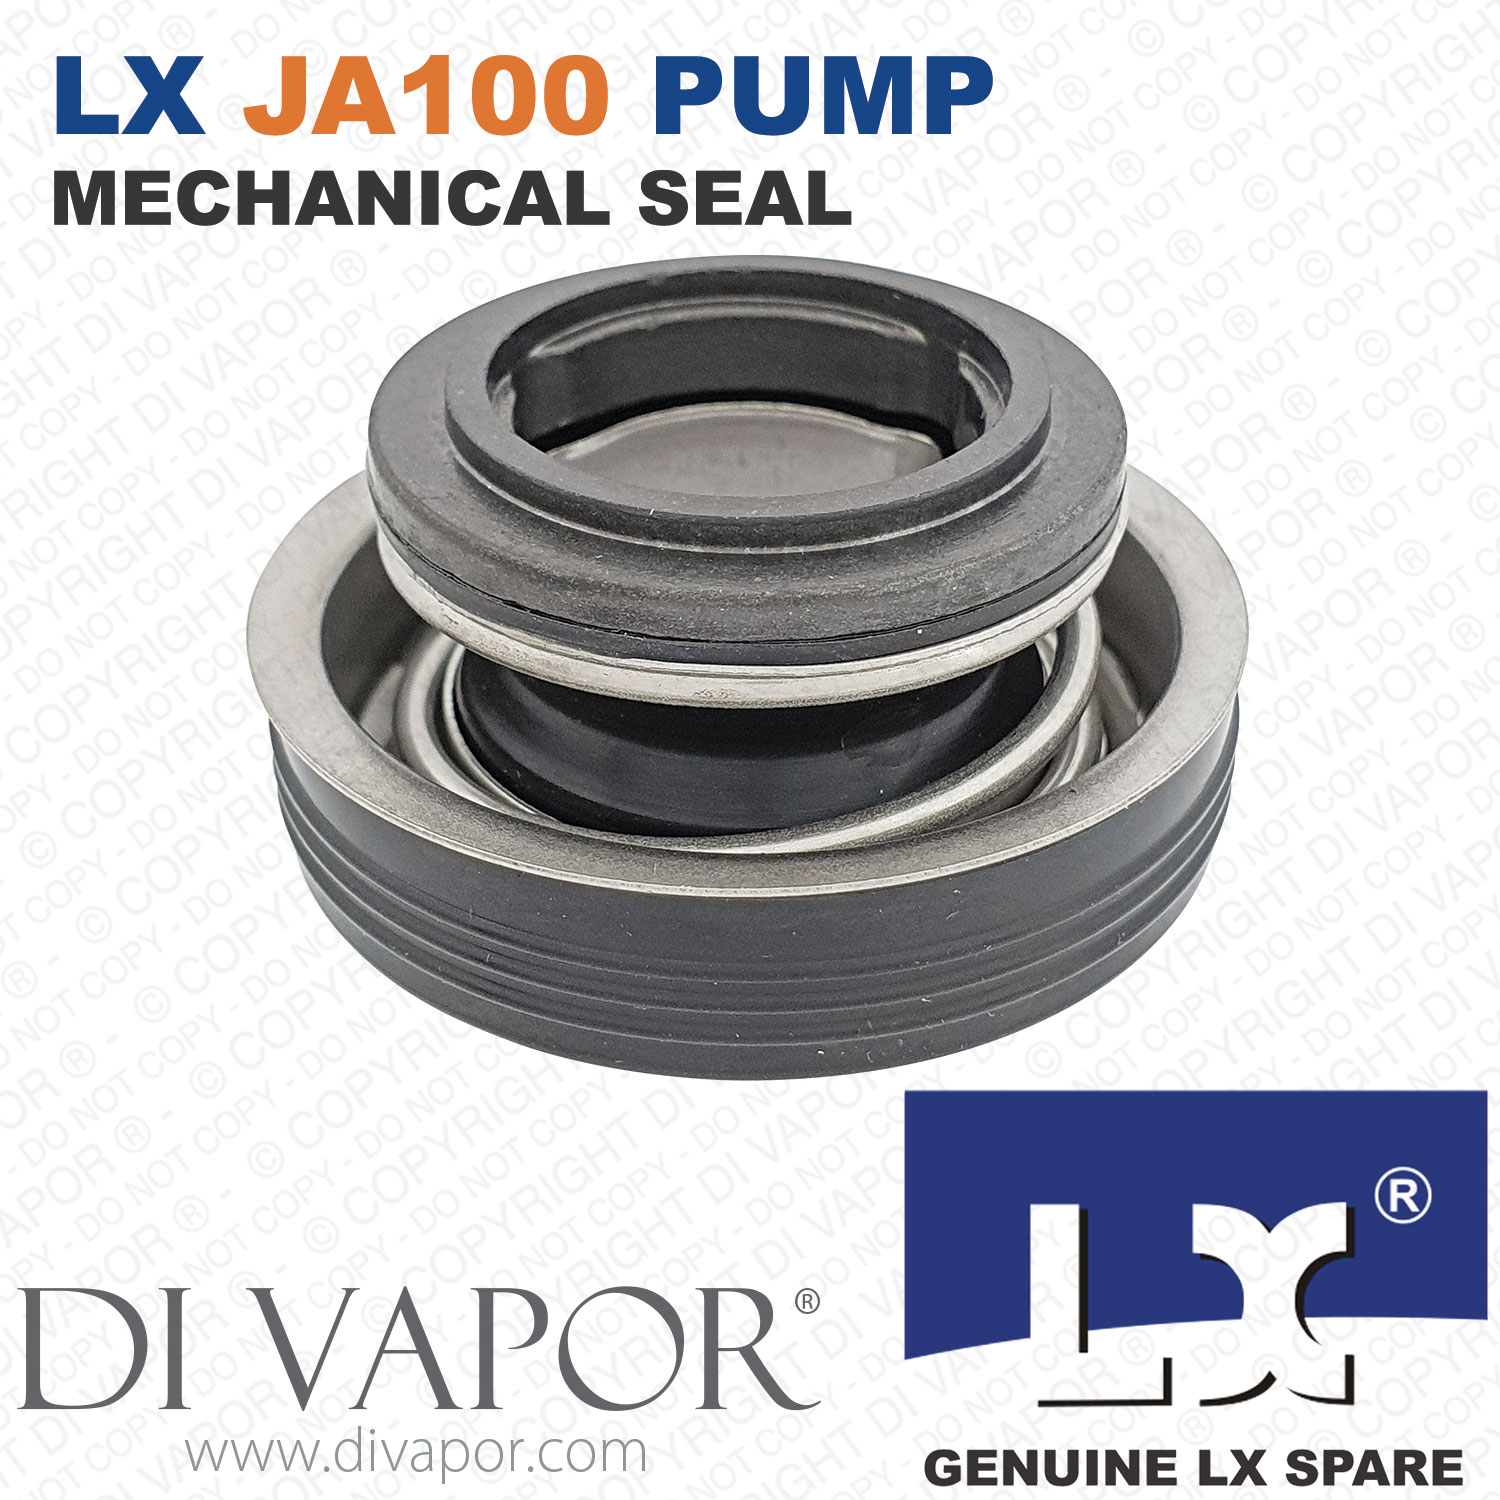 LX JA100 Pump Mechanical Seal Spare